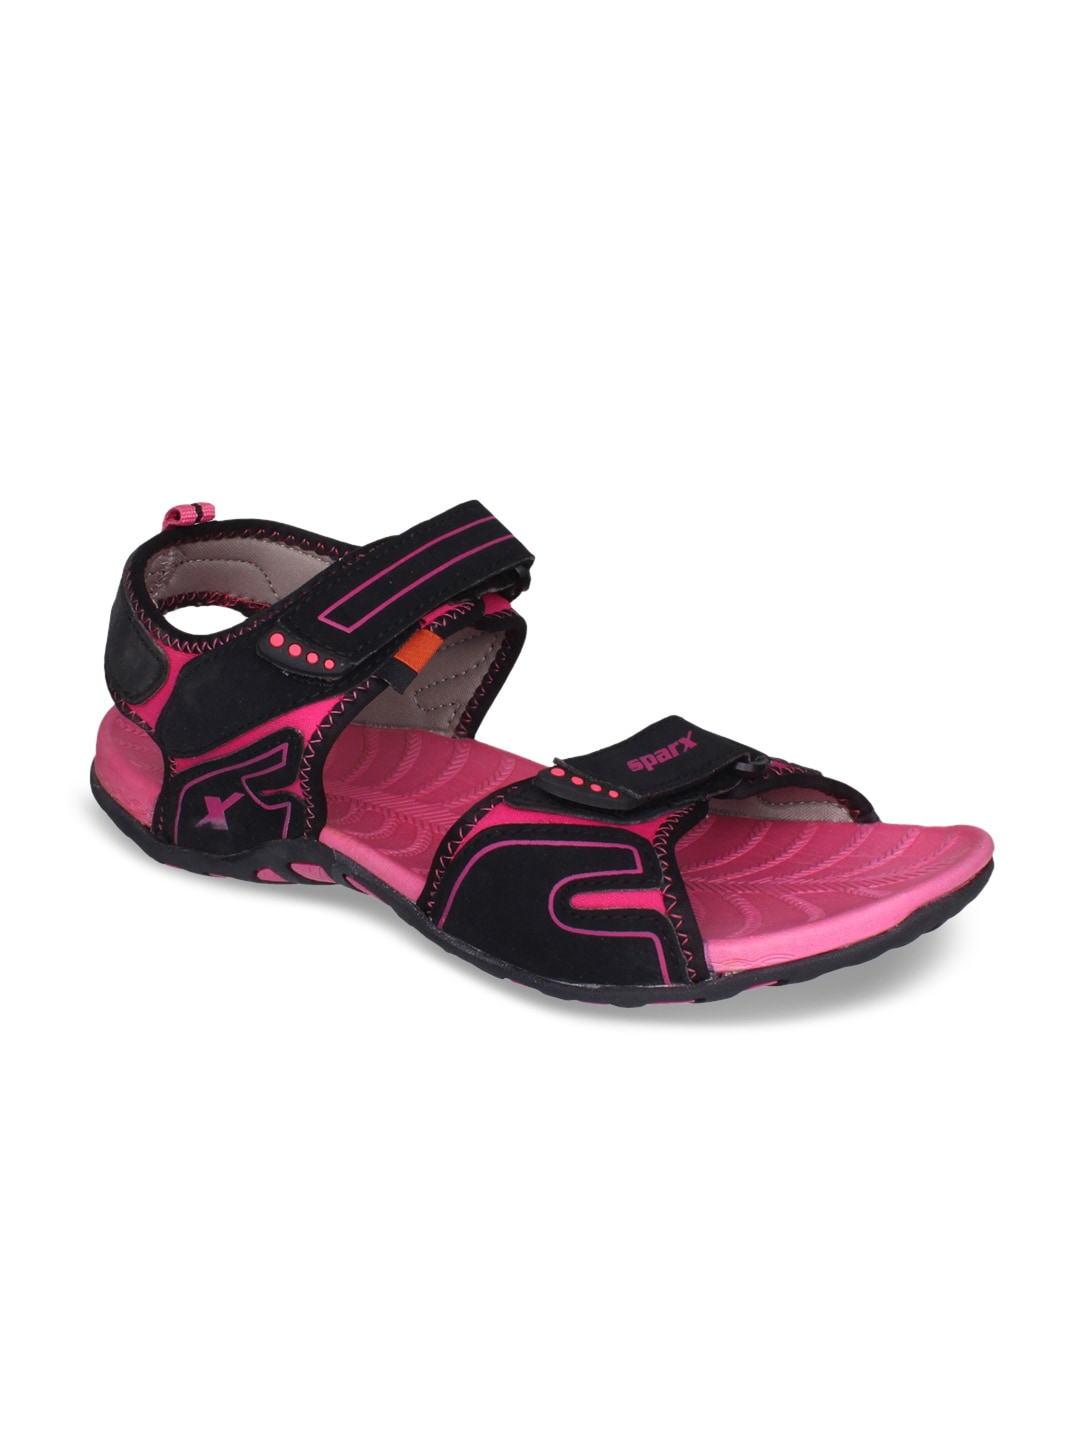 1ae947fd9 Women Sports Sandals - Buy Women Sports Sandals online in India